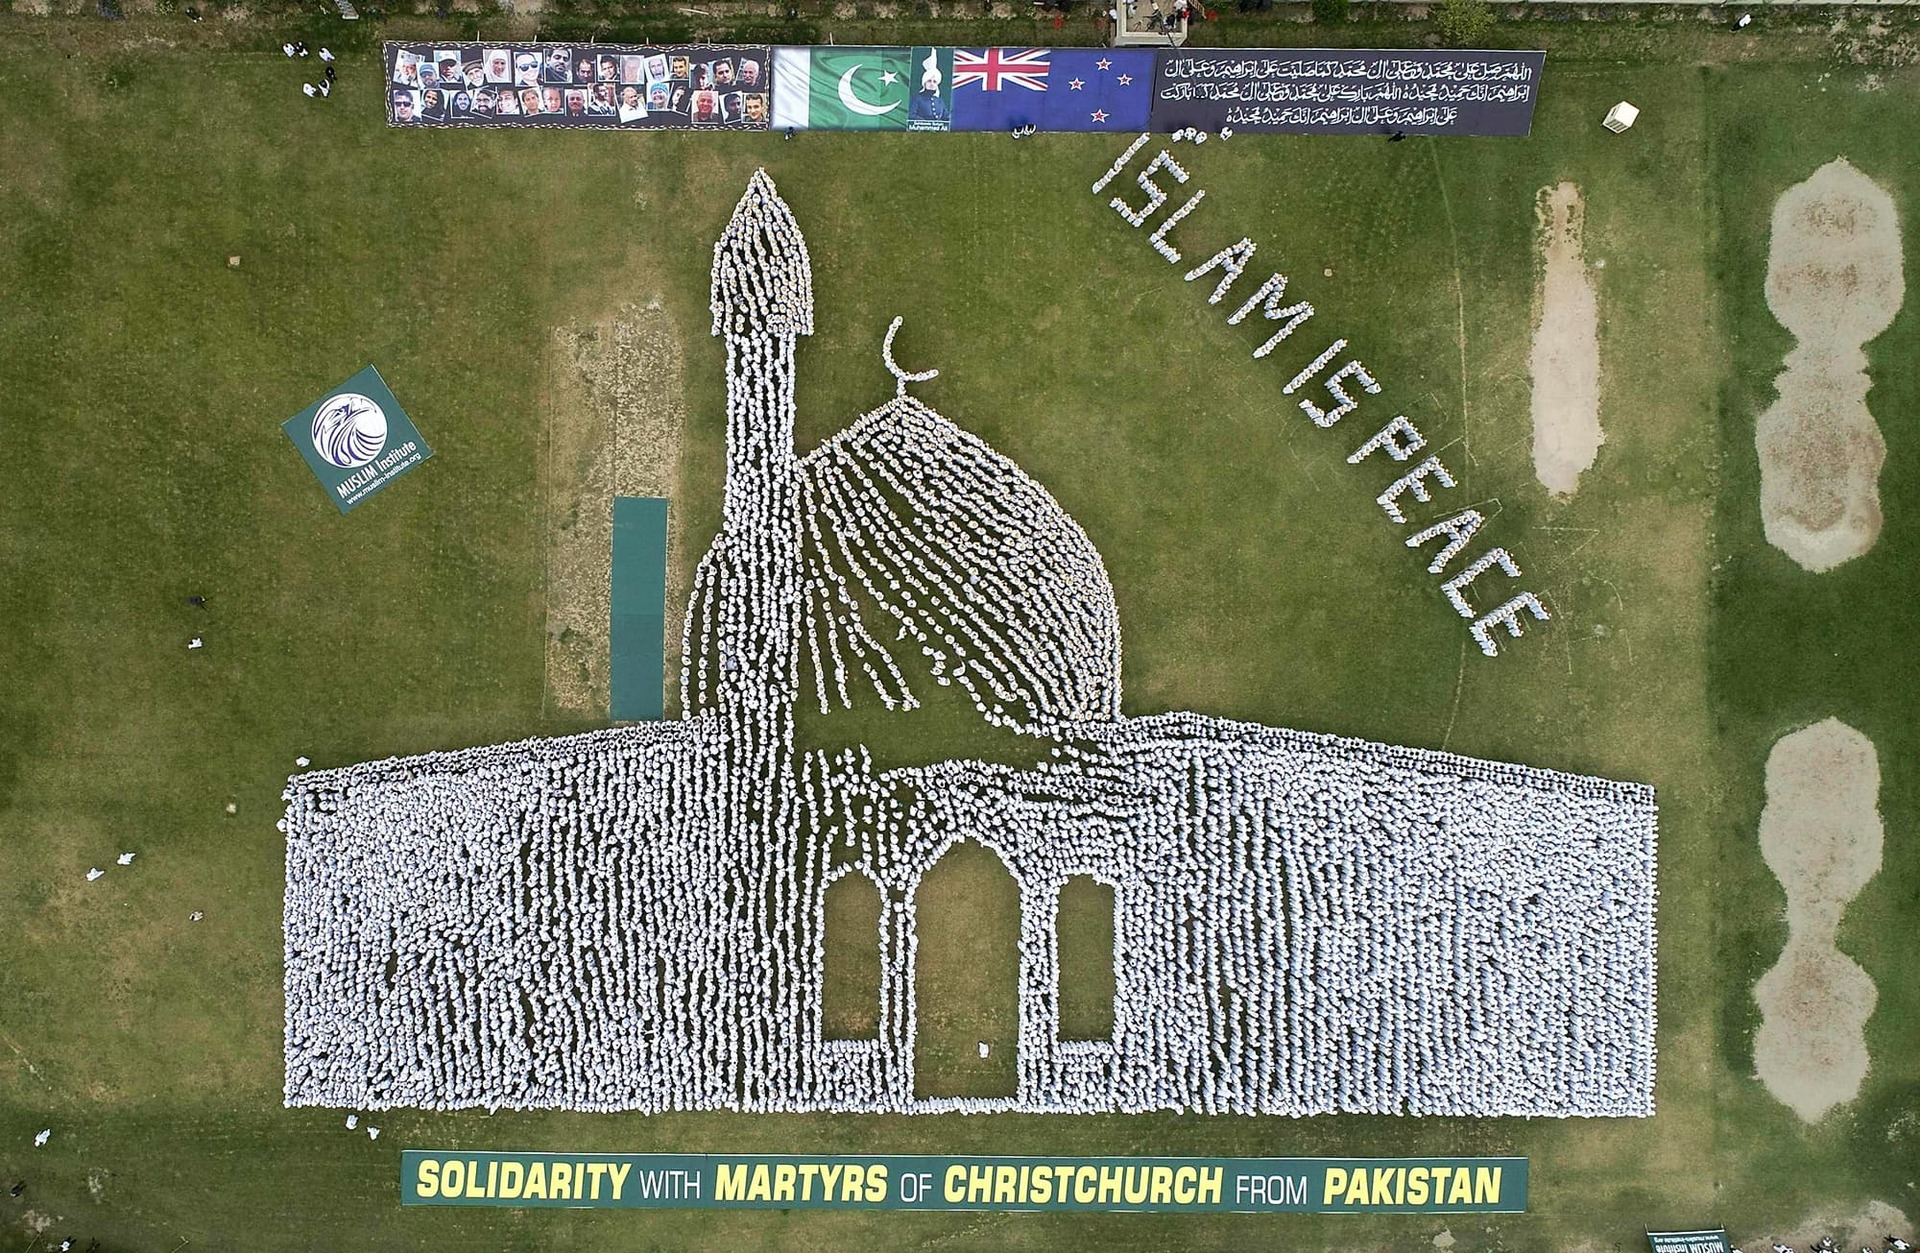 20,000 Pakistanis create shape of Christchurch mosque to show solidarity